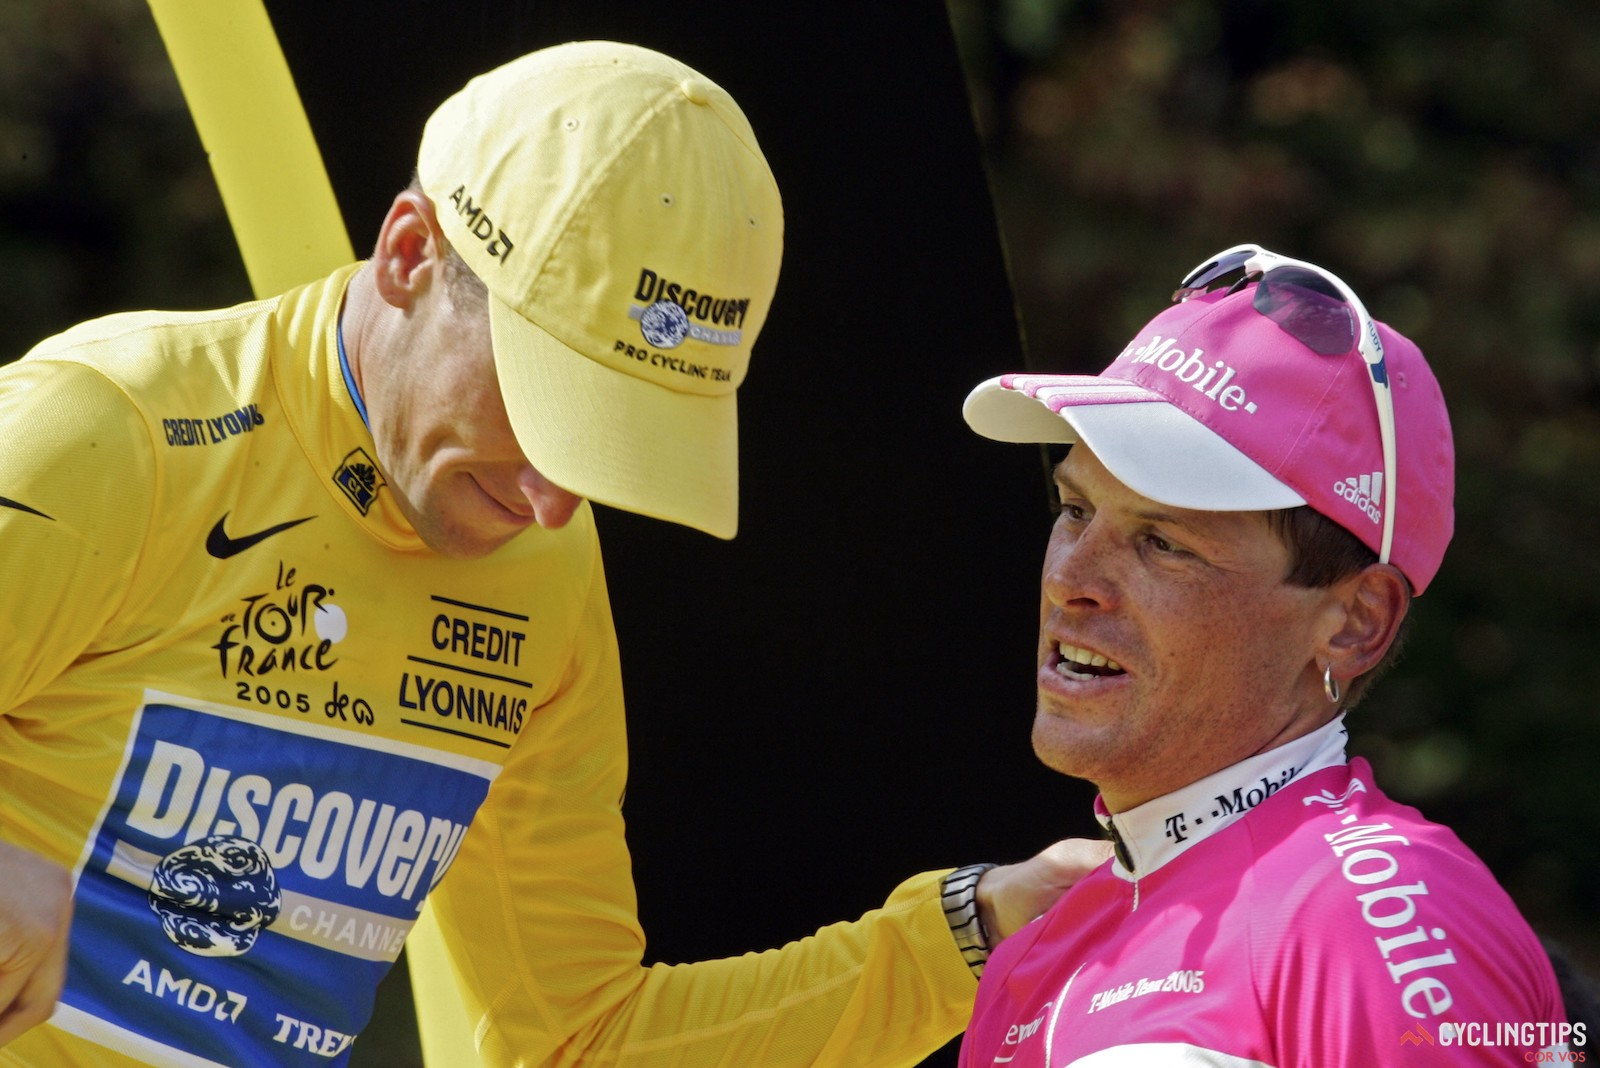 Lance Armstrong and Jan Ullrich, first and third overall at the 2005 Tour de France. The relationship between the former rivals has always been complicated, but cordial. Photo: Marketa Navratilova/Cor Vos.